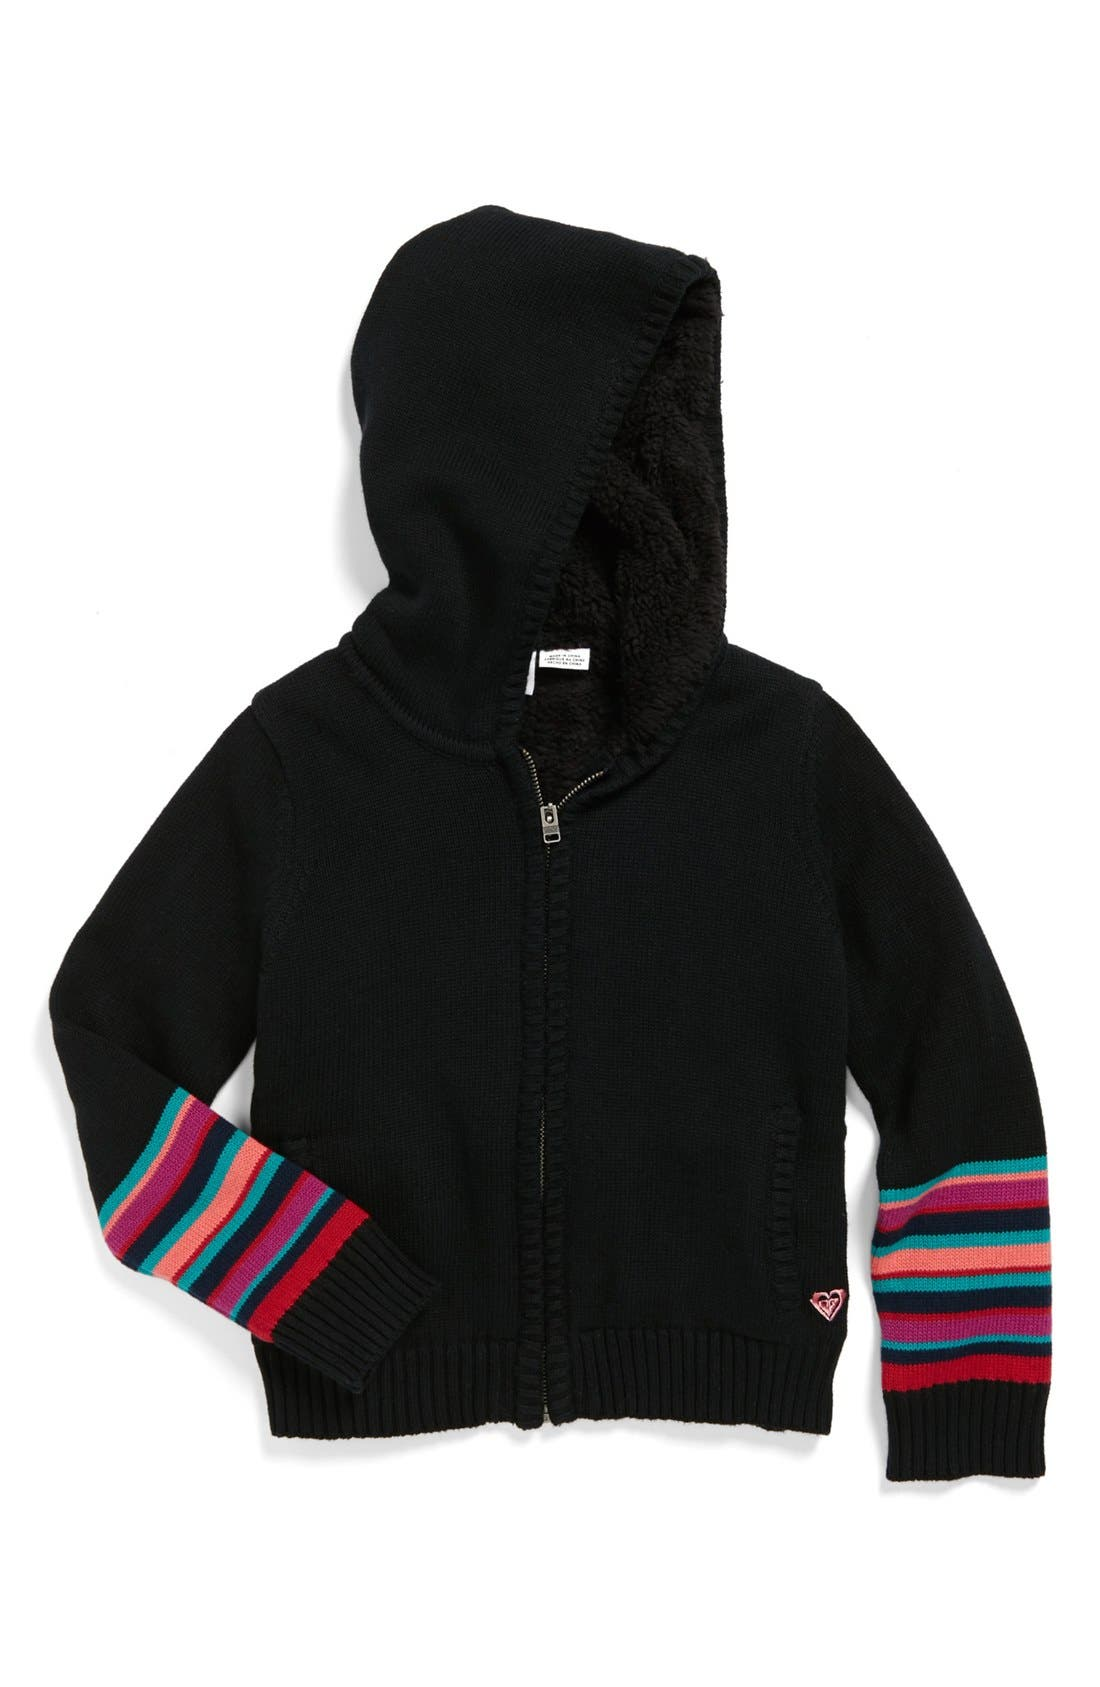 Alternate Image 1 Selected - Roxy 'Wild Awake' Full Zip Hoodie Sweater (Little Girls)